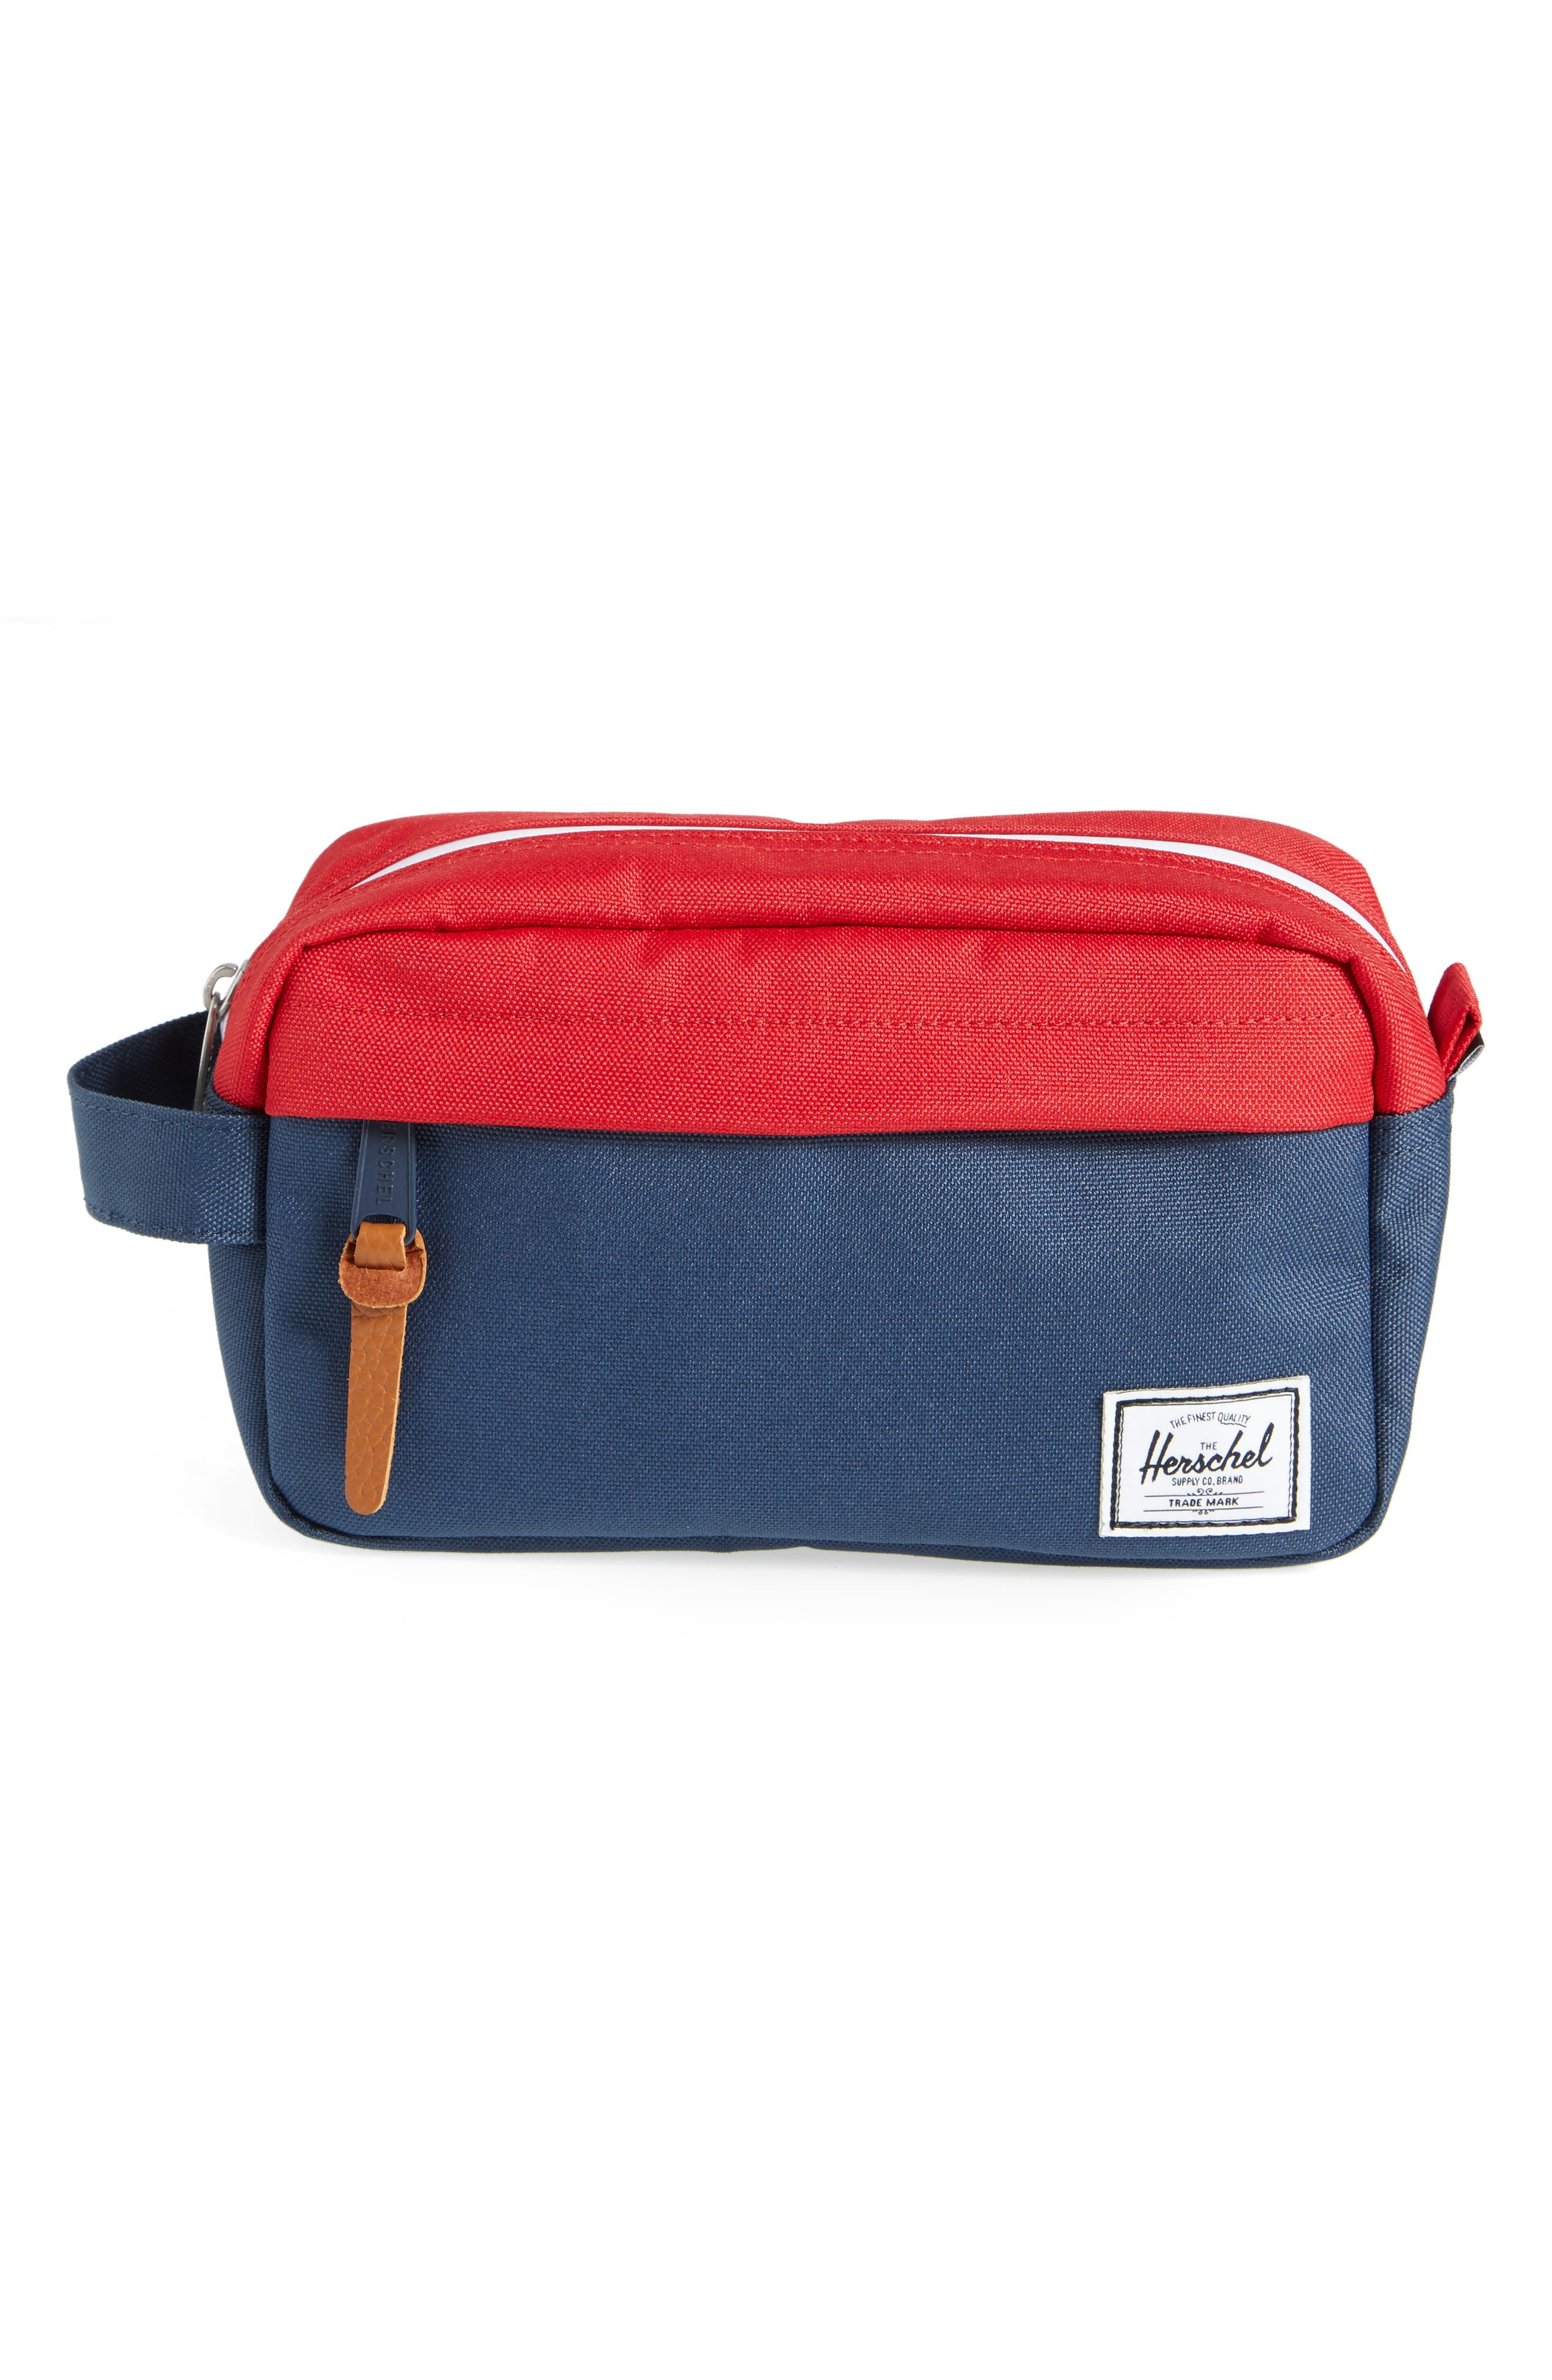 Main Image - Herschel Supply Co. Chapter Carry-On Travel Kit